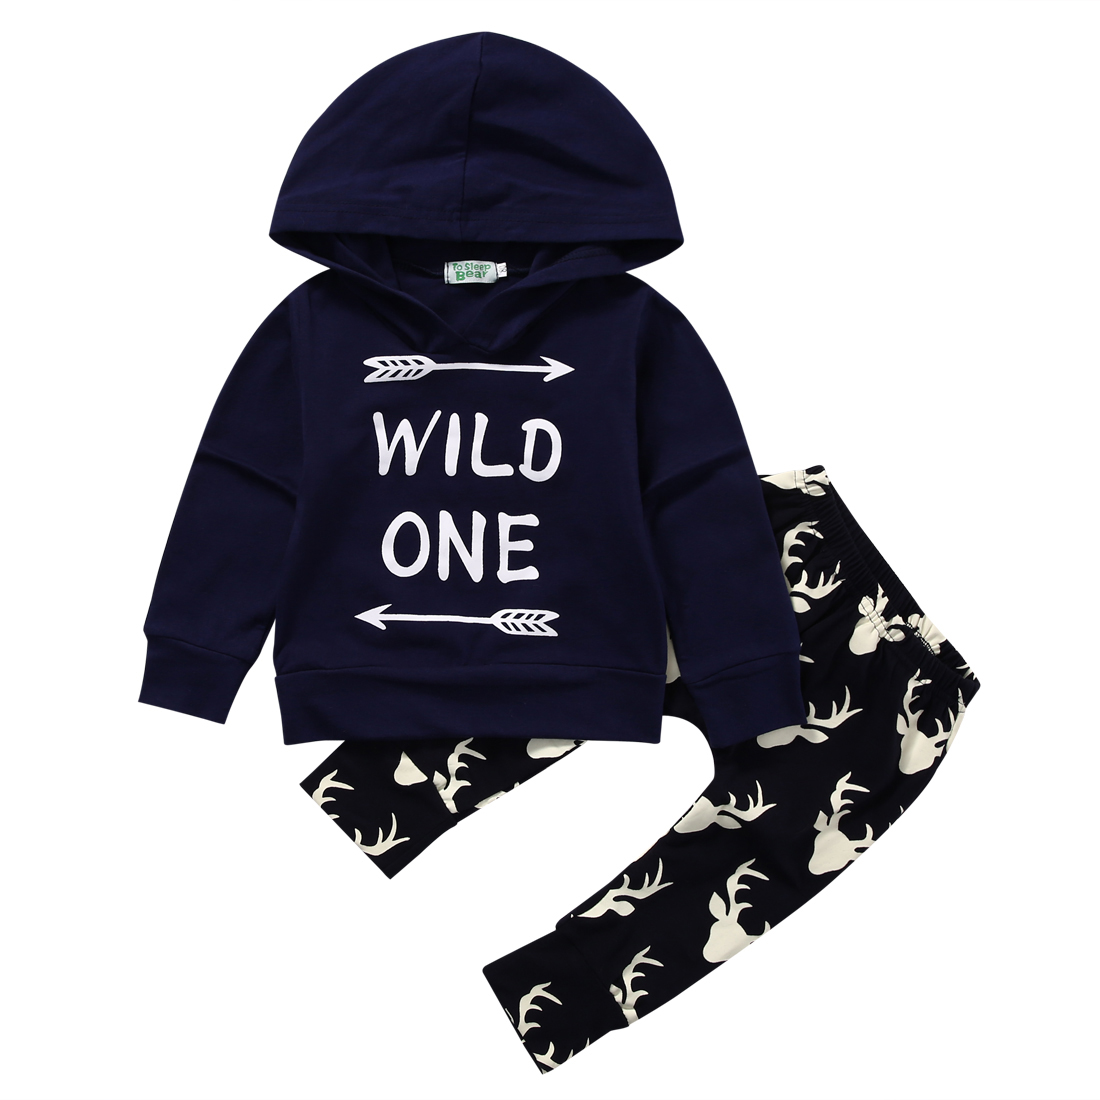 2PCS Set Baby Clothes Infant Newborn Bebes Long Sleeve Hooded Sweatshirt Wild One Tops + Deer Pant Trouser Outfit Kids Clothing 2pcs children outfit clothes kids baby girl off shoulder cotton ruffled sleeve tops striped t shirt blue denim jeans sunsuit set